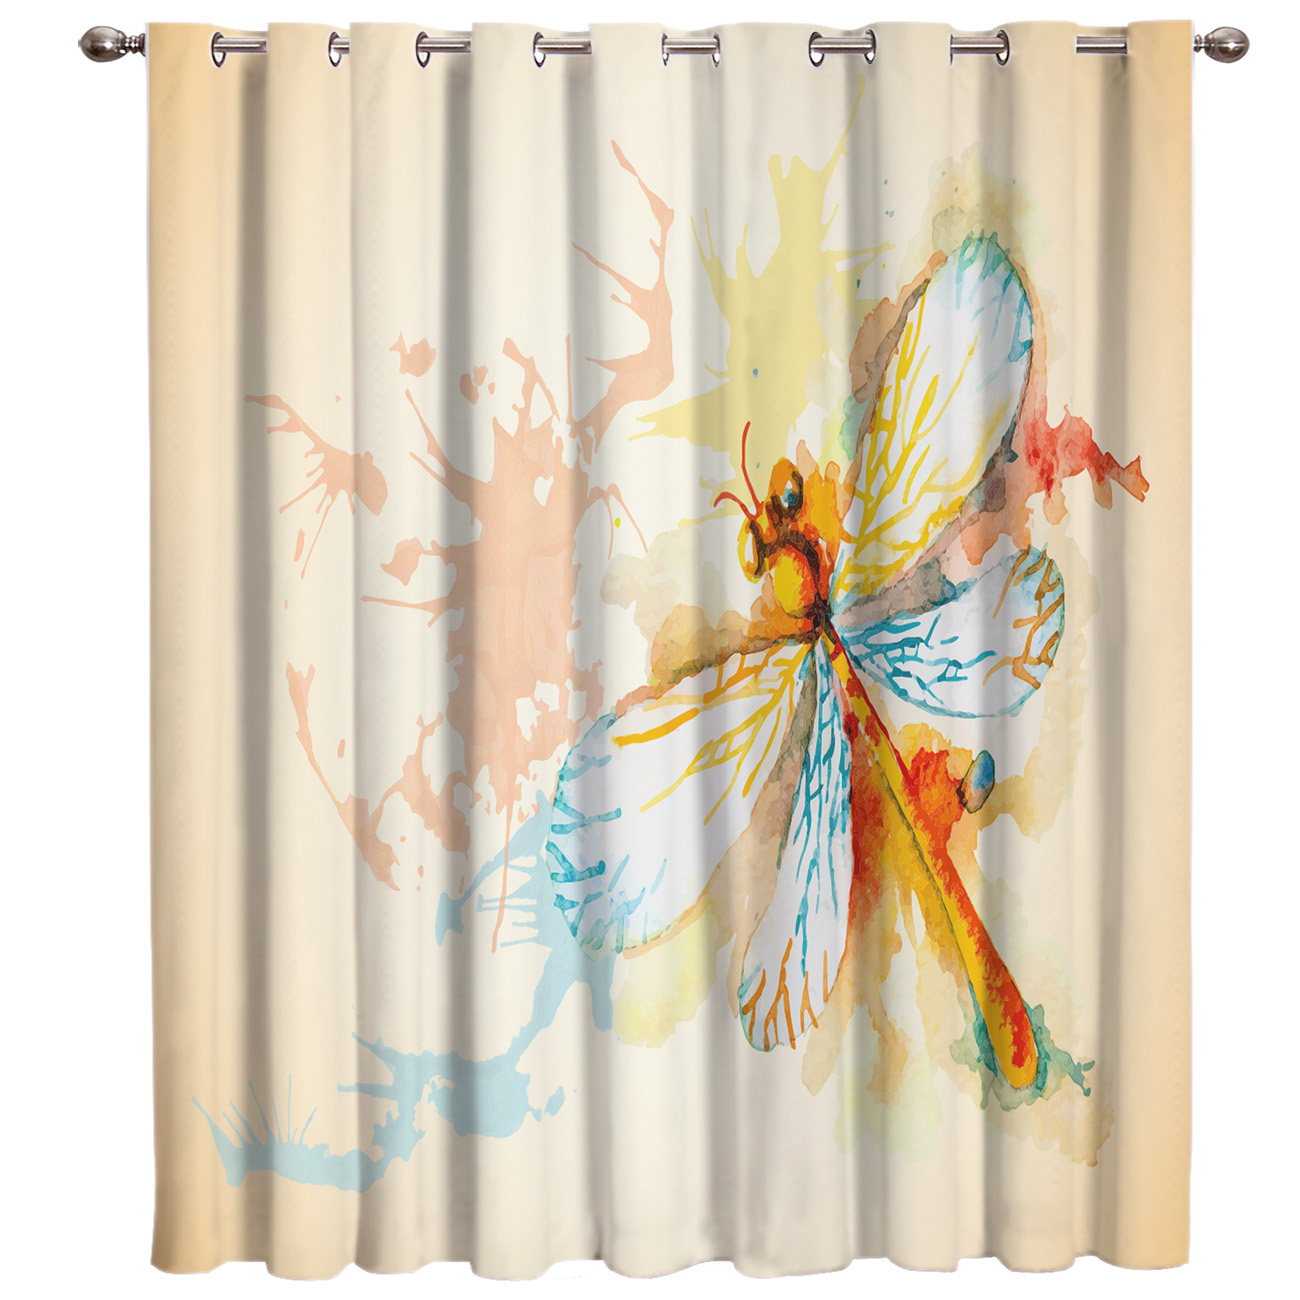 Watercolor Dragonfly Living Room Bathroom Blackout Outdoor Indoor Drapes Decor Print Kids Curtain Panels With Grommets Window